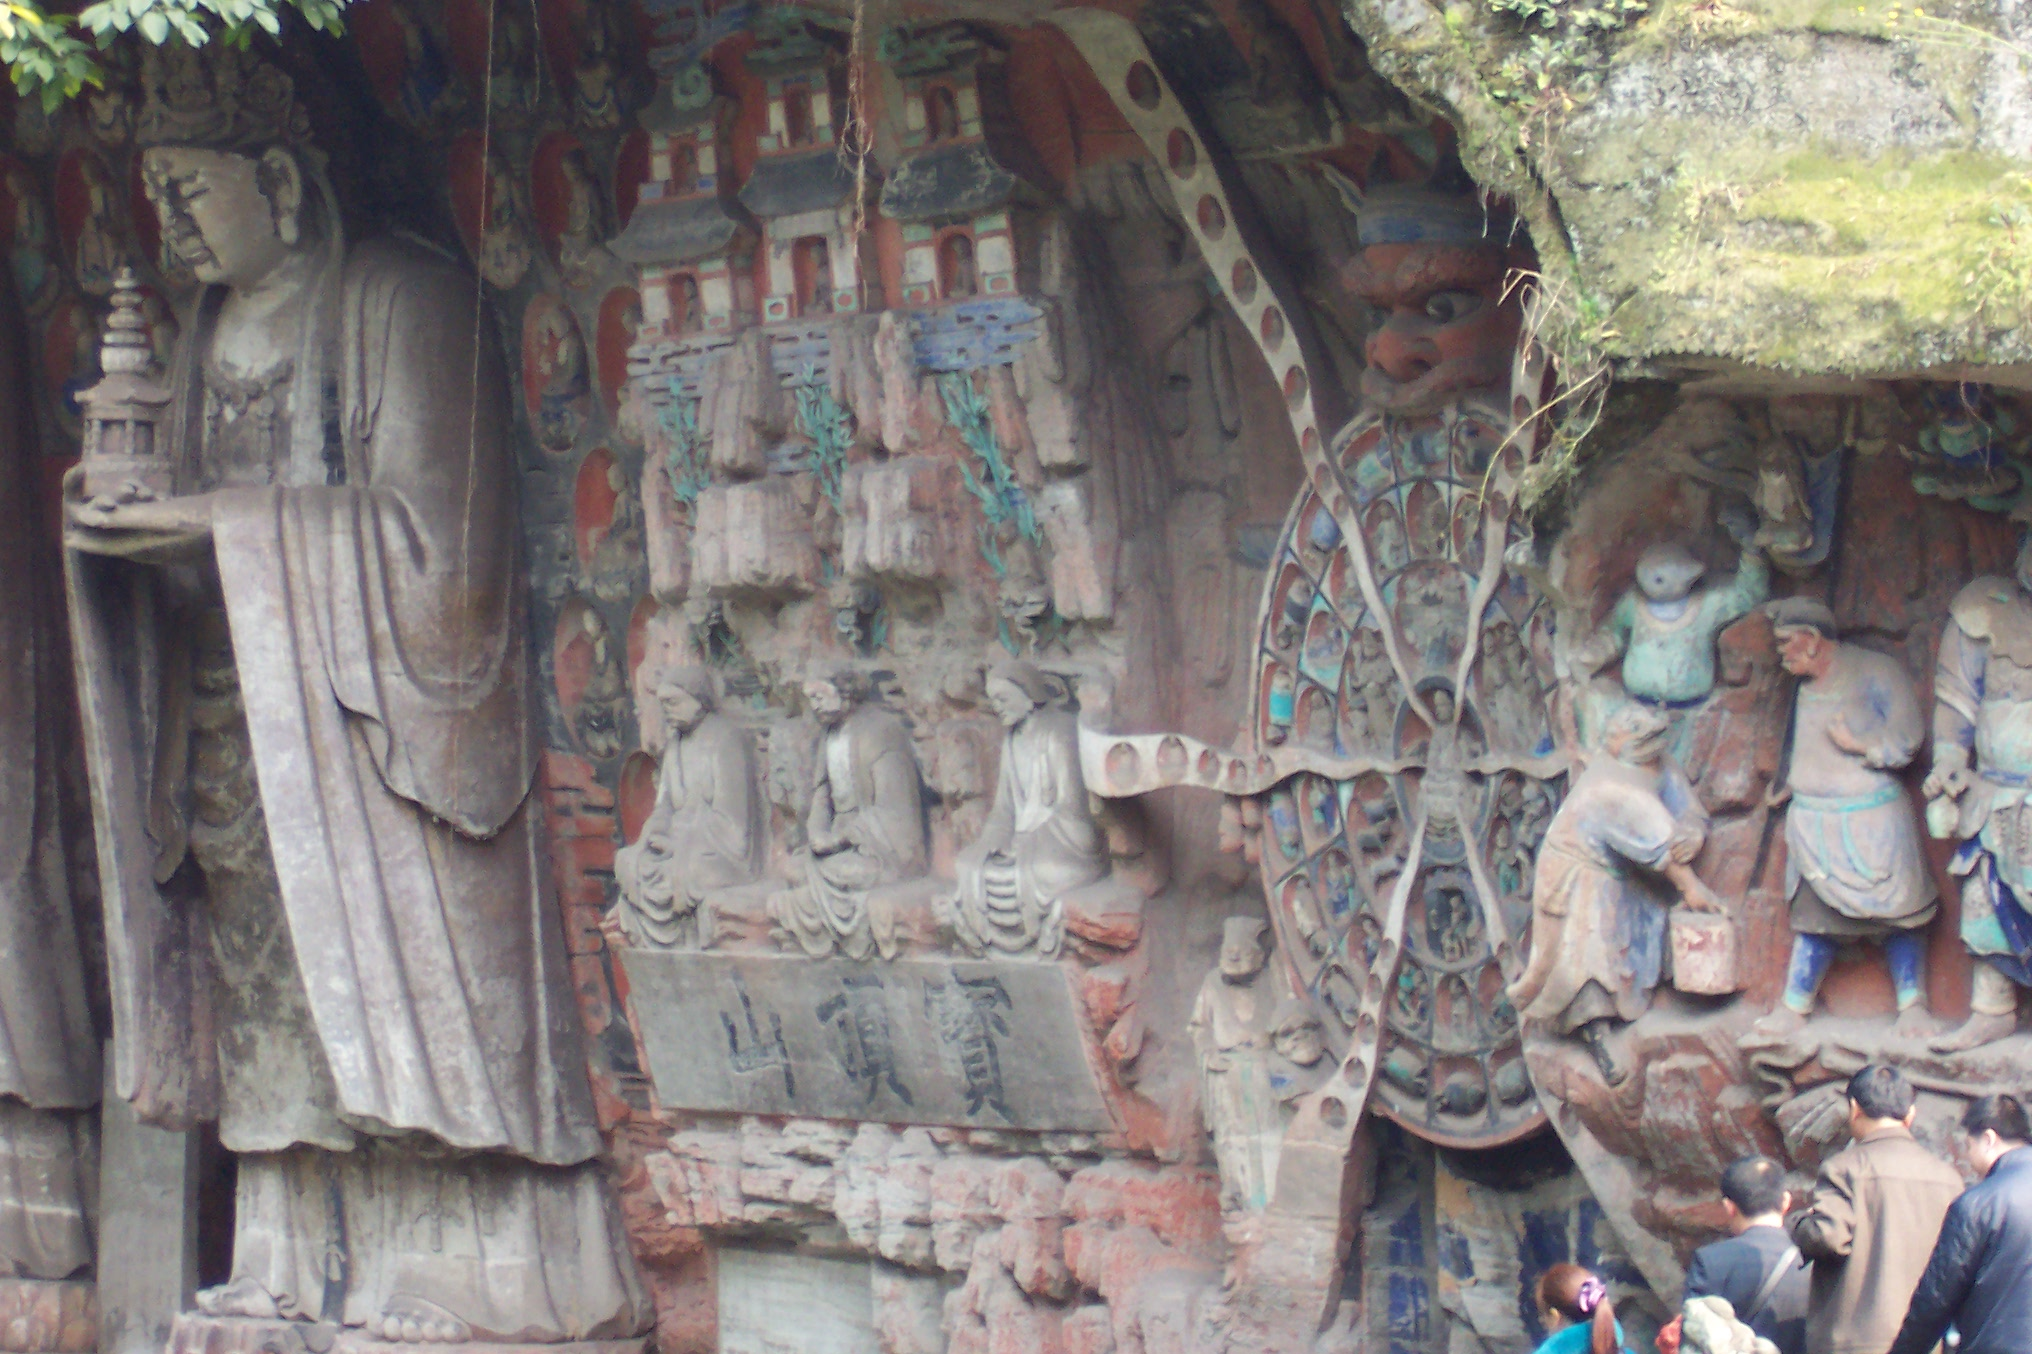 The dazu rock carvings